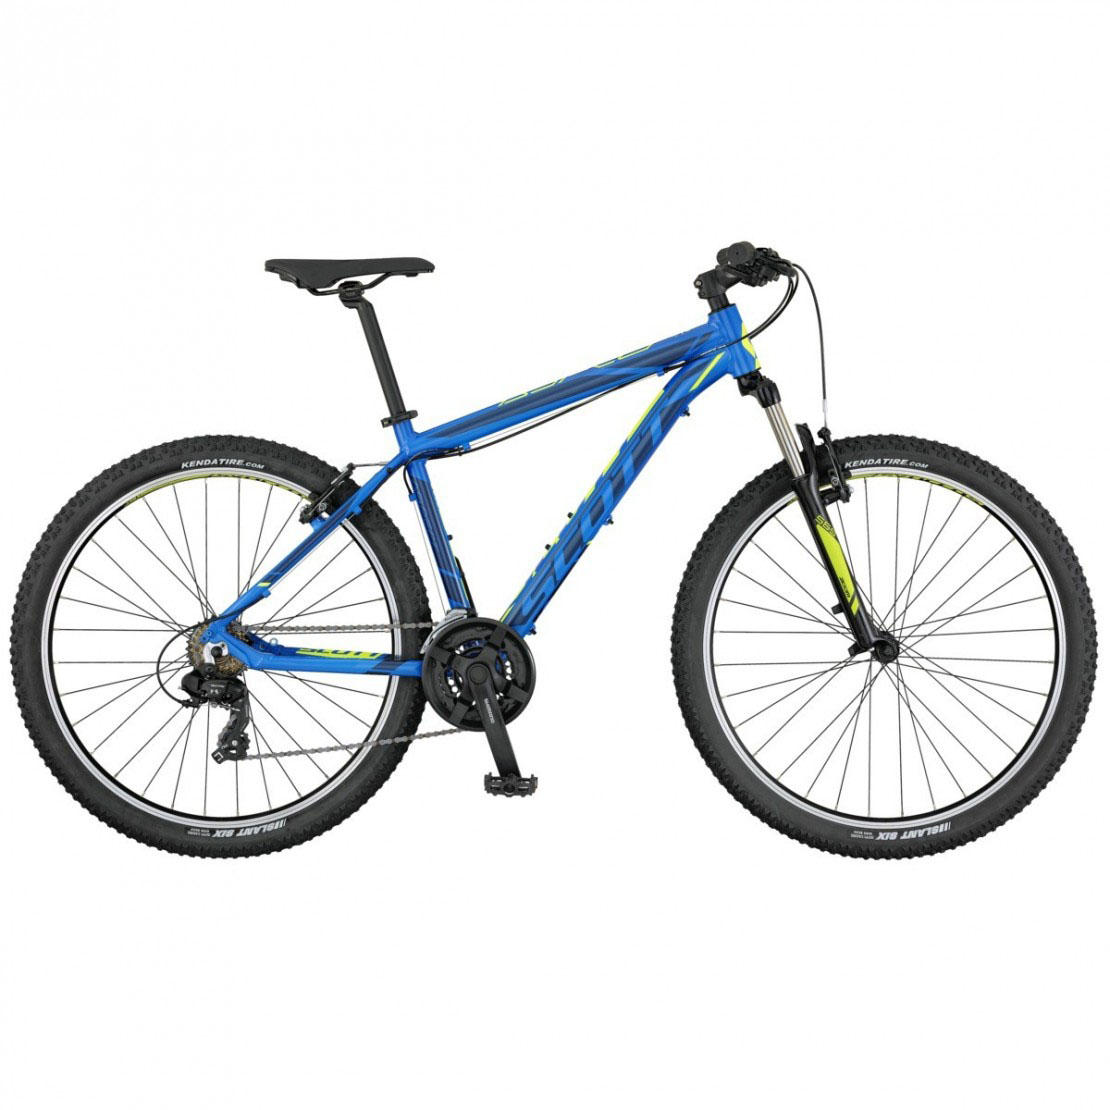 Scott Aspect 980 2017 29er Mountain Bike